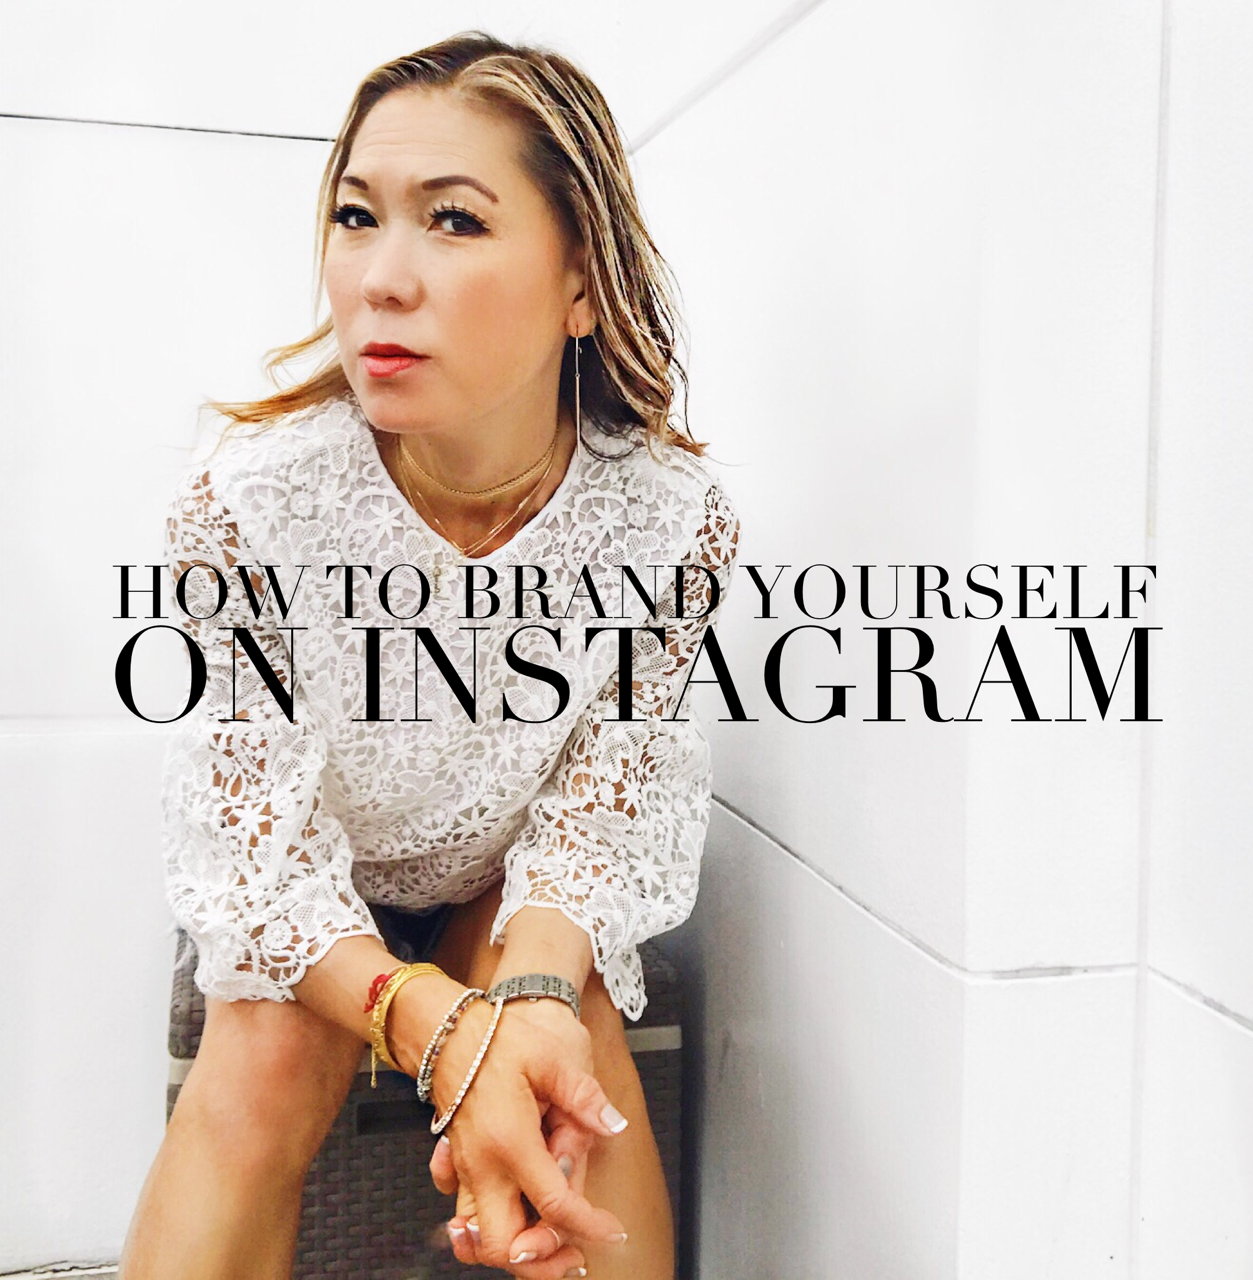 How To Brand Yourself On Instagram